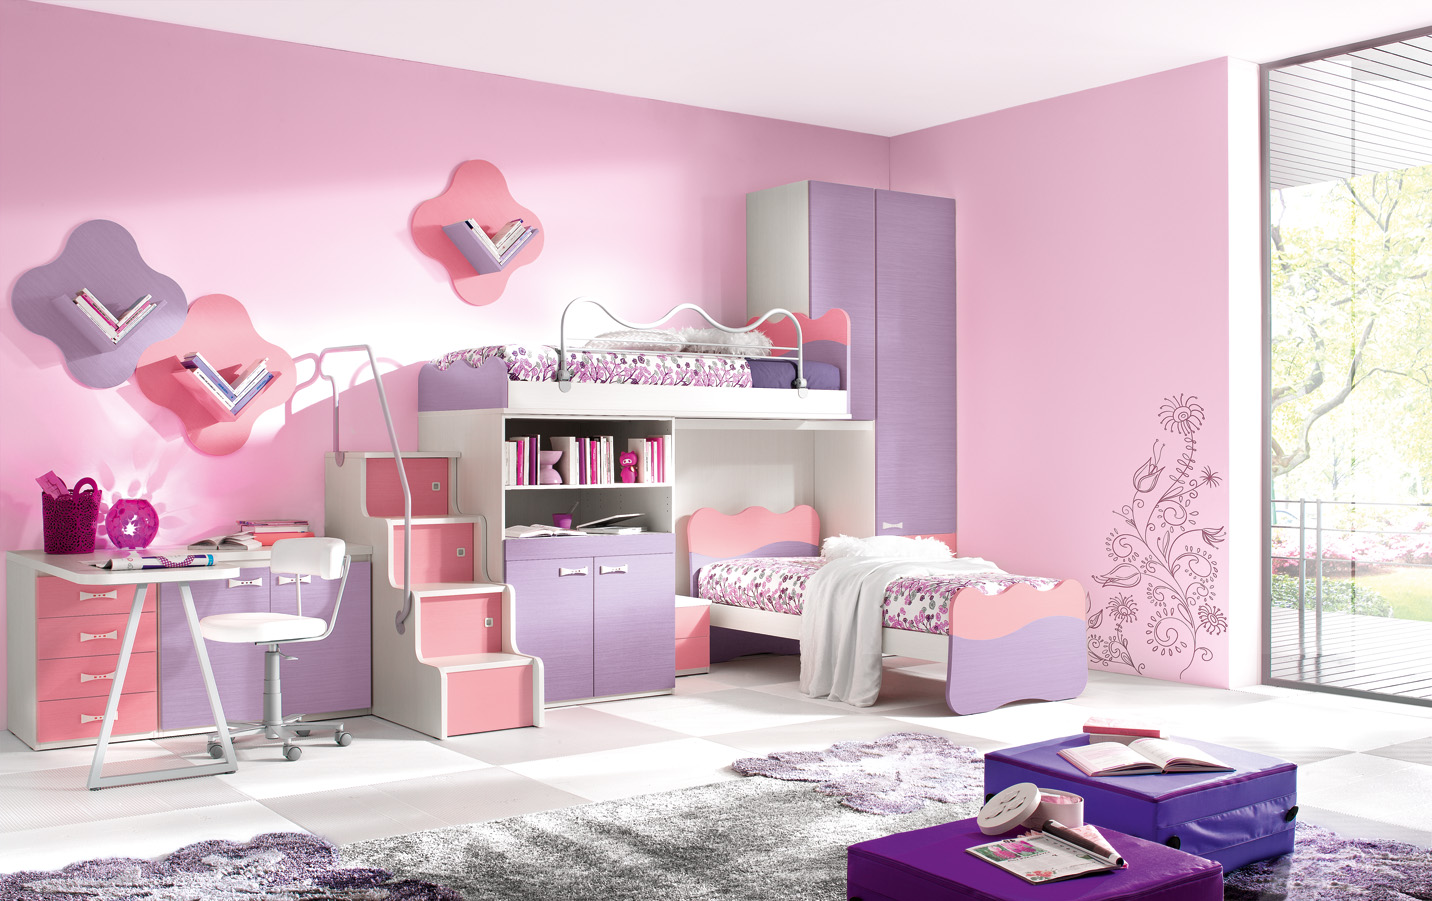 Girls Bedroom Ideas: The Orchid Touch